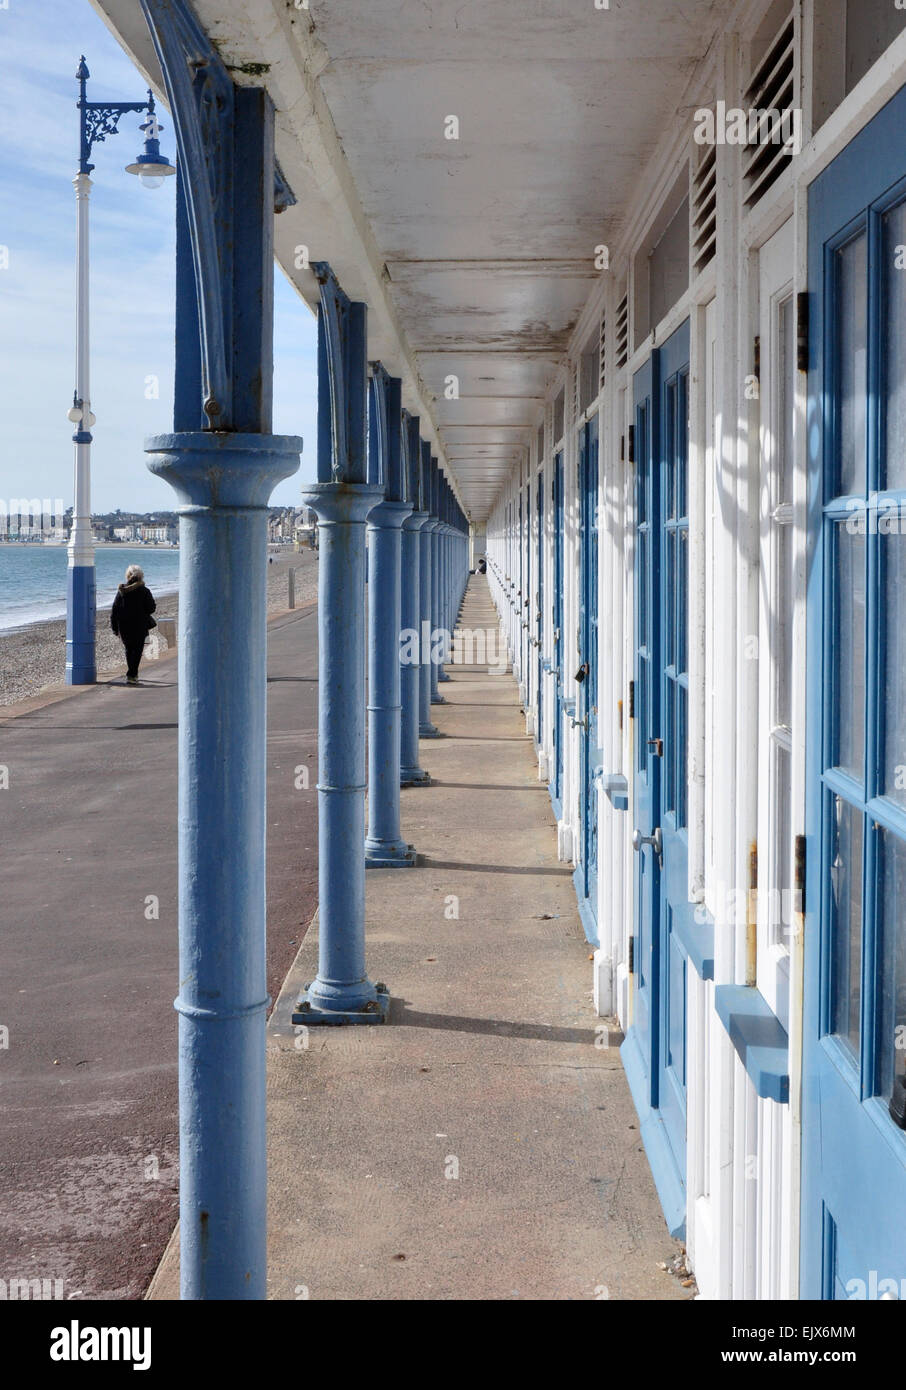 Deserted seaside promenade - solitary woman walking away - parallel with arched arcade - dramatic view to vanishing - Stock Image